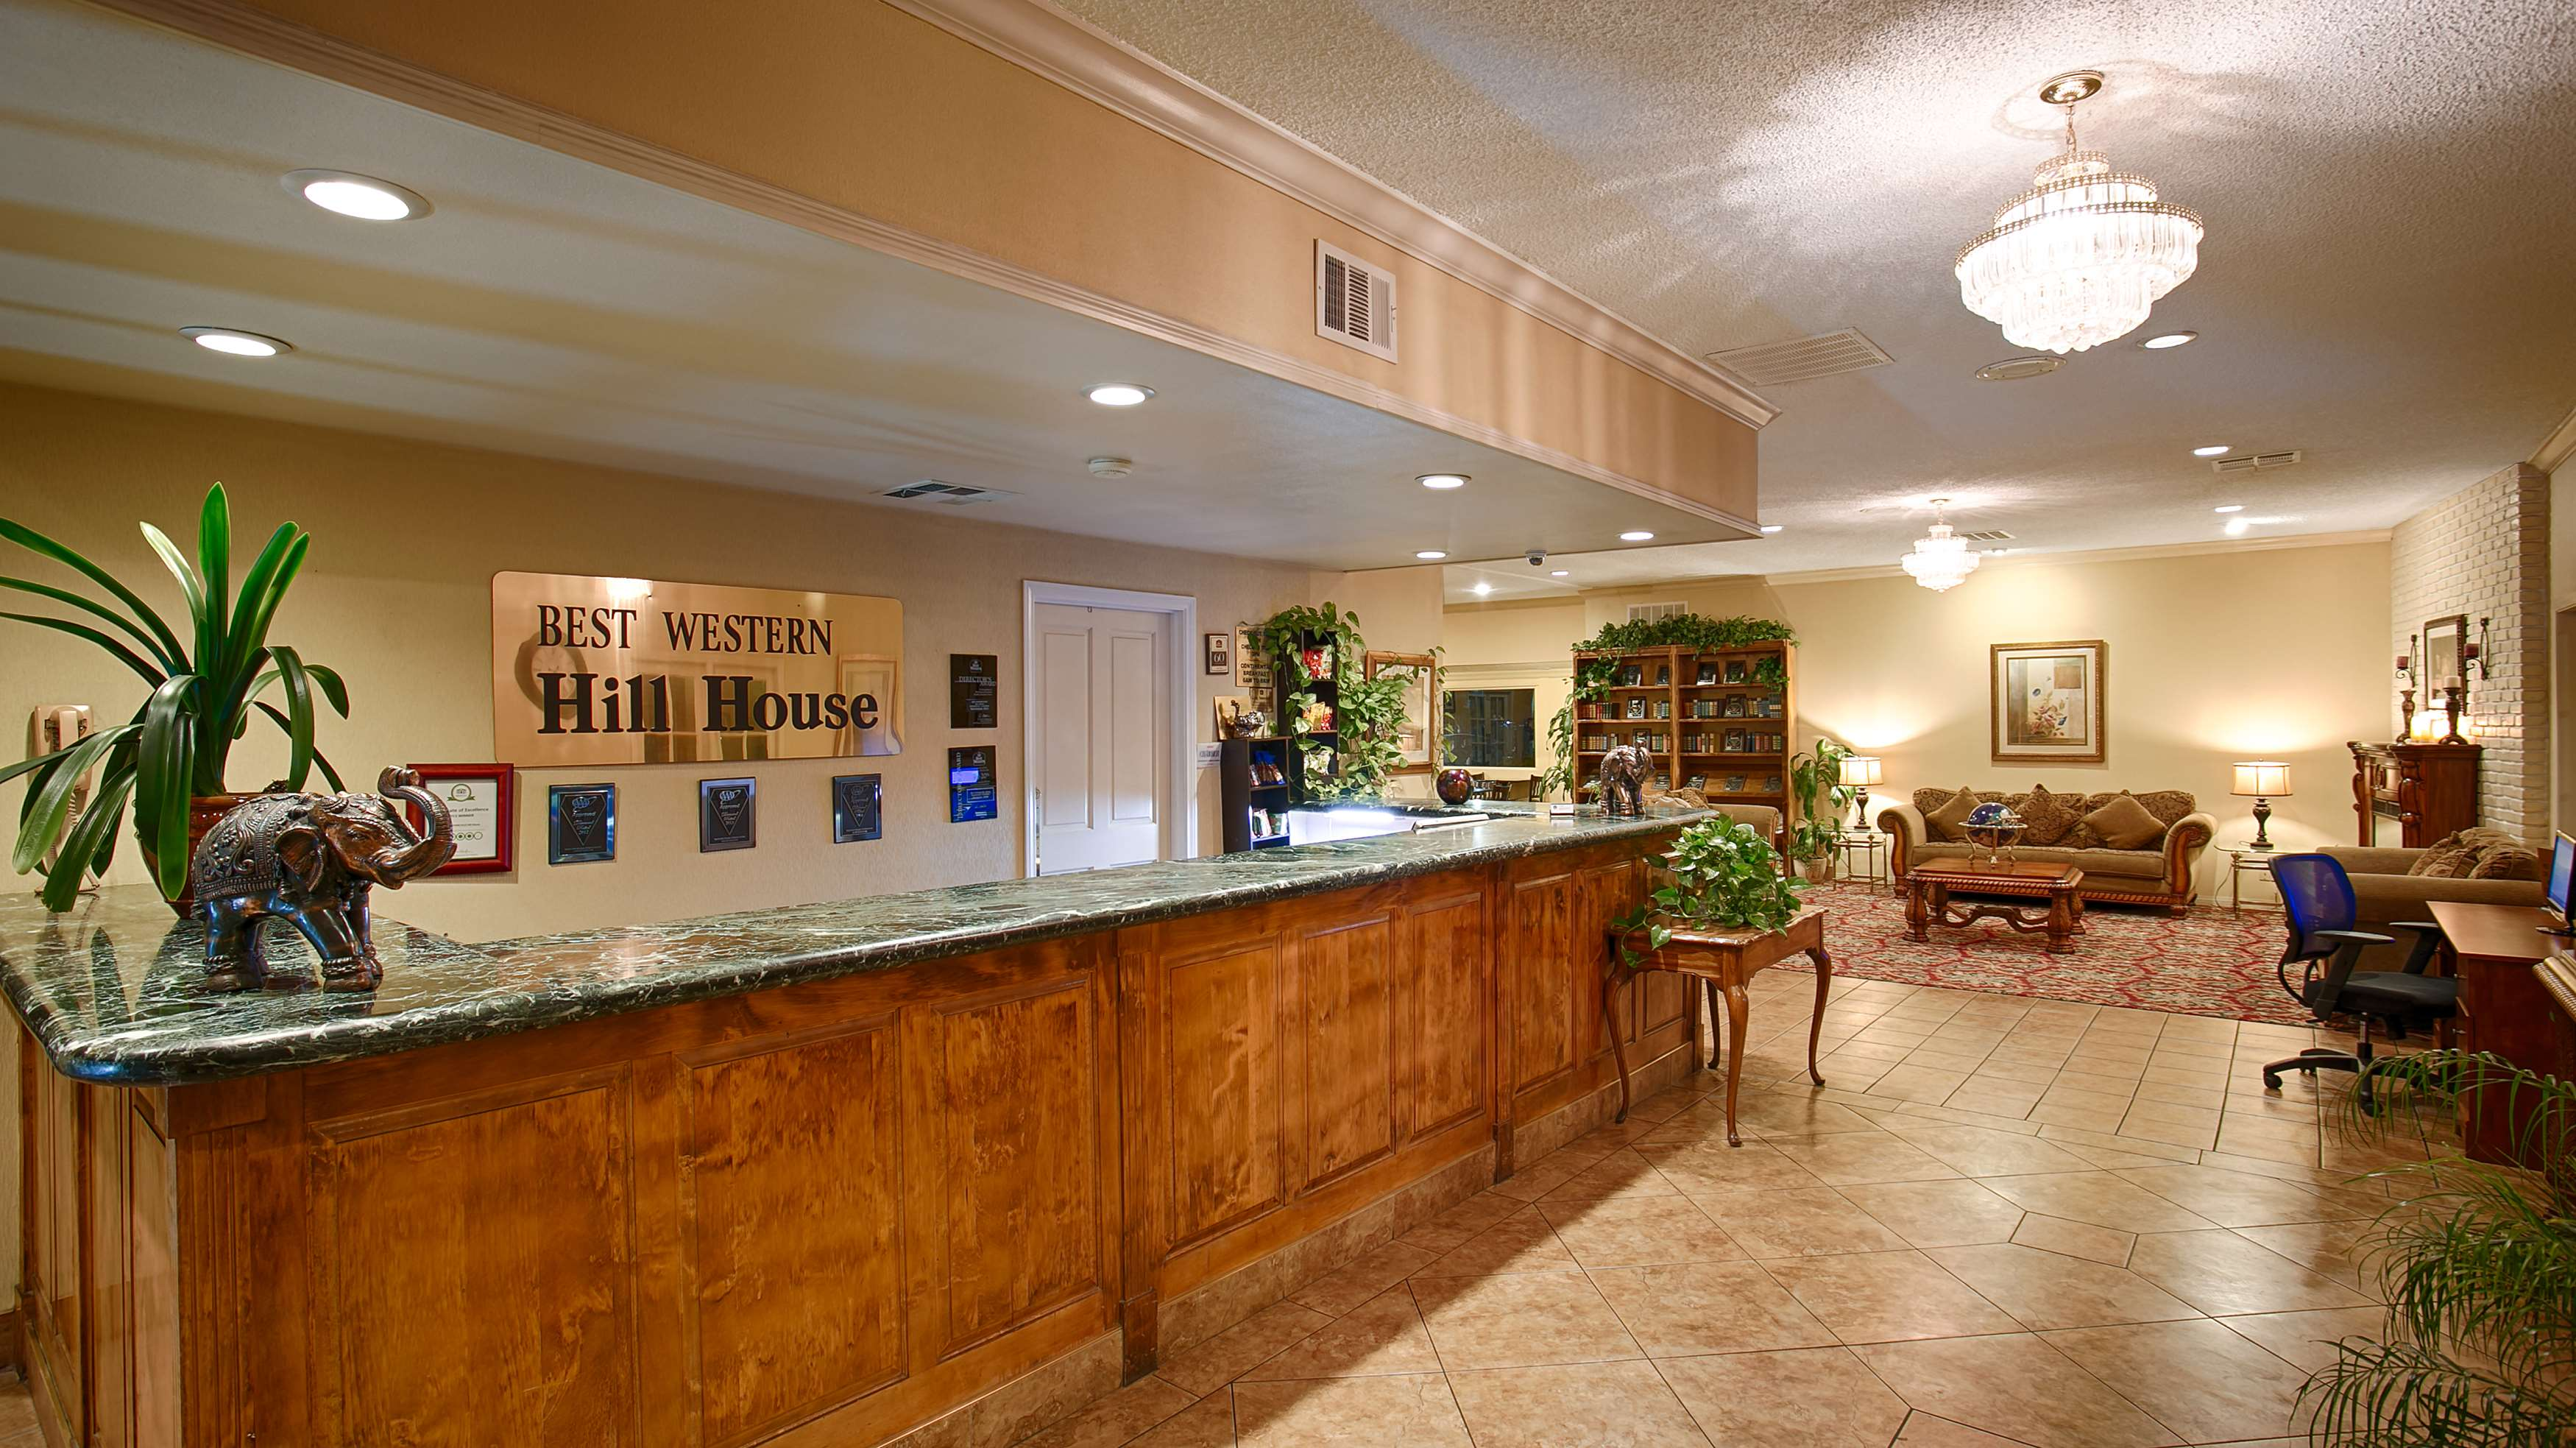 Best western plus hill house at 700 truxtun ave for Golden state motors bakersfield